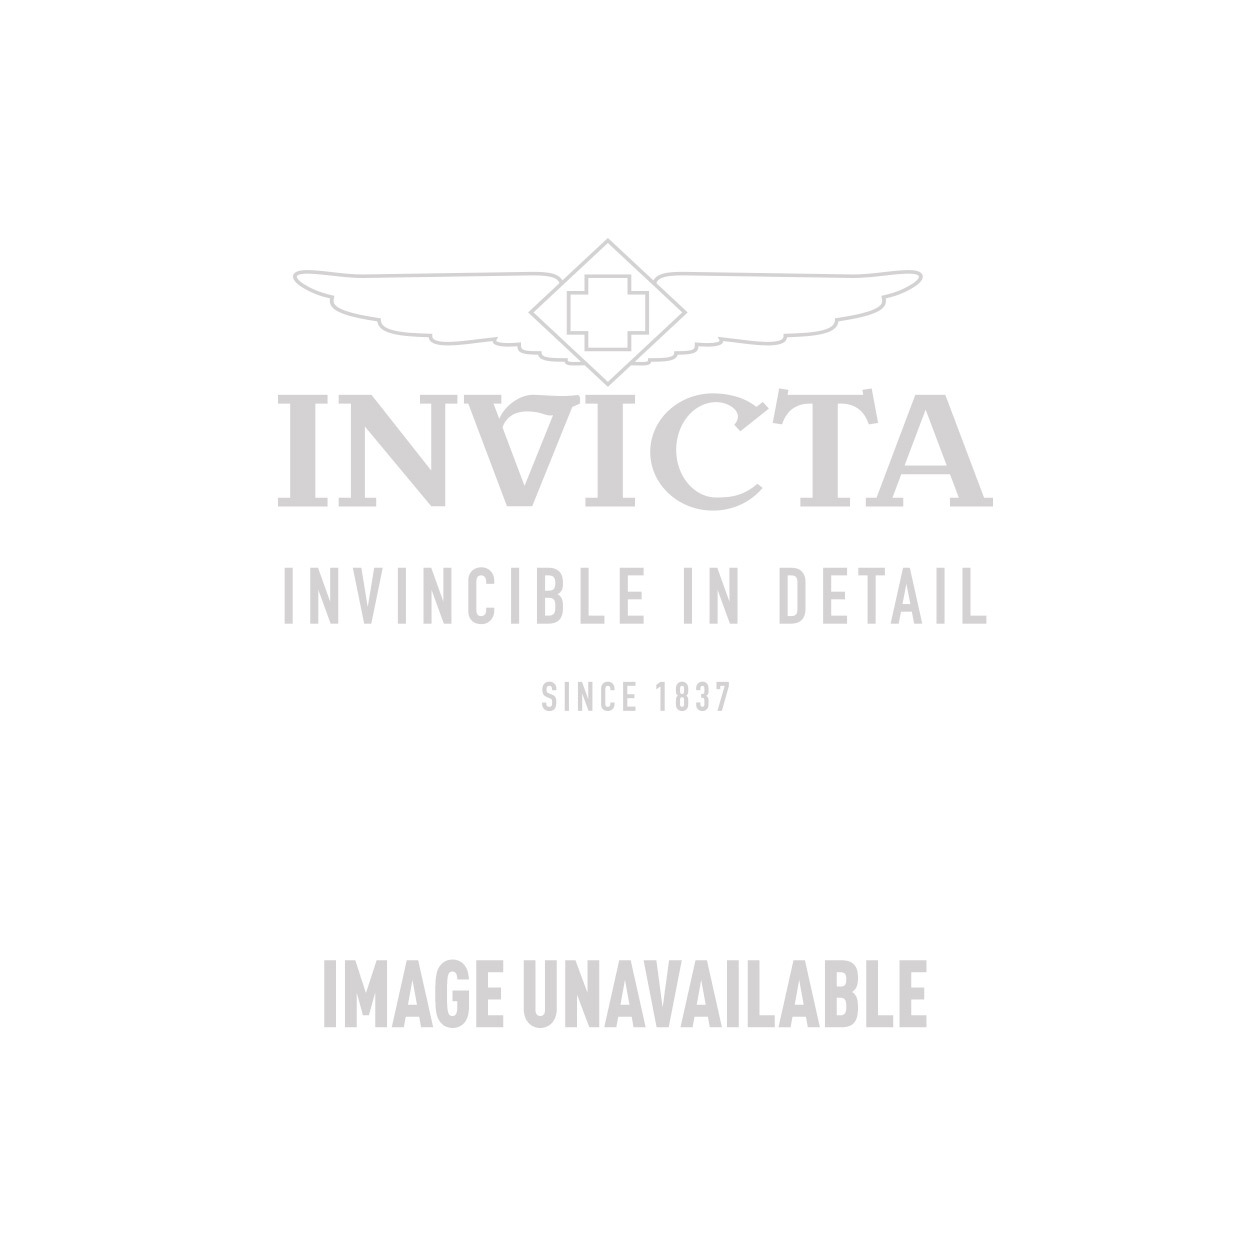 Invicta Sea Hunter Swiss Made Quartz Watch - Gold, Stainless Steel case Stainless Steel band - Model 12532